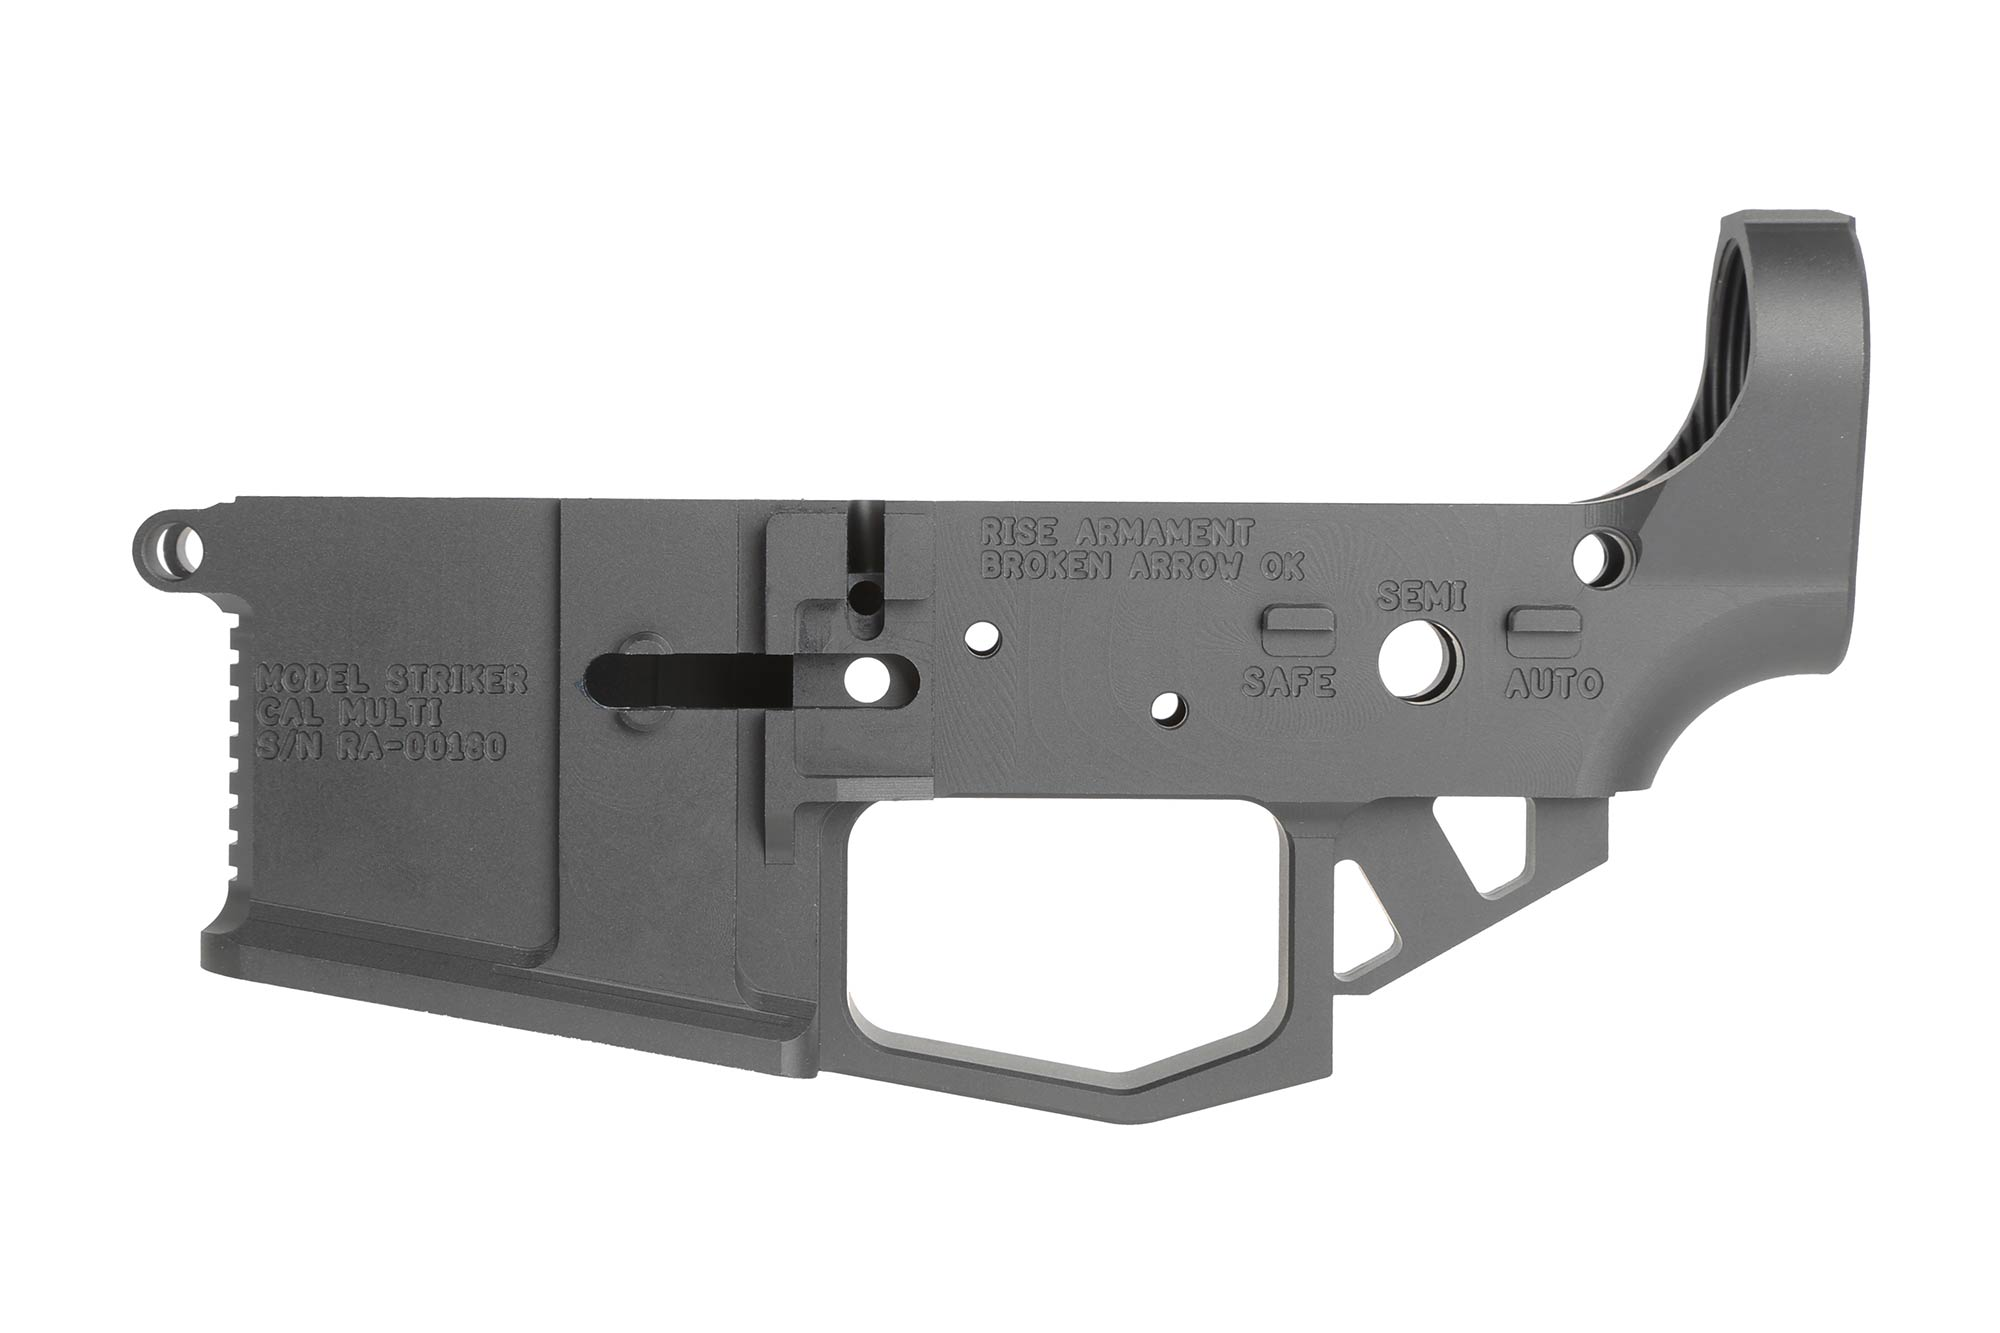 Rise Armament RA-201 STRIKER BILLET AR-15 LOWER RECEIVER